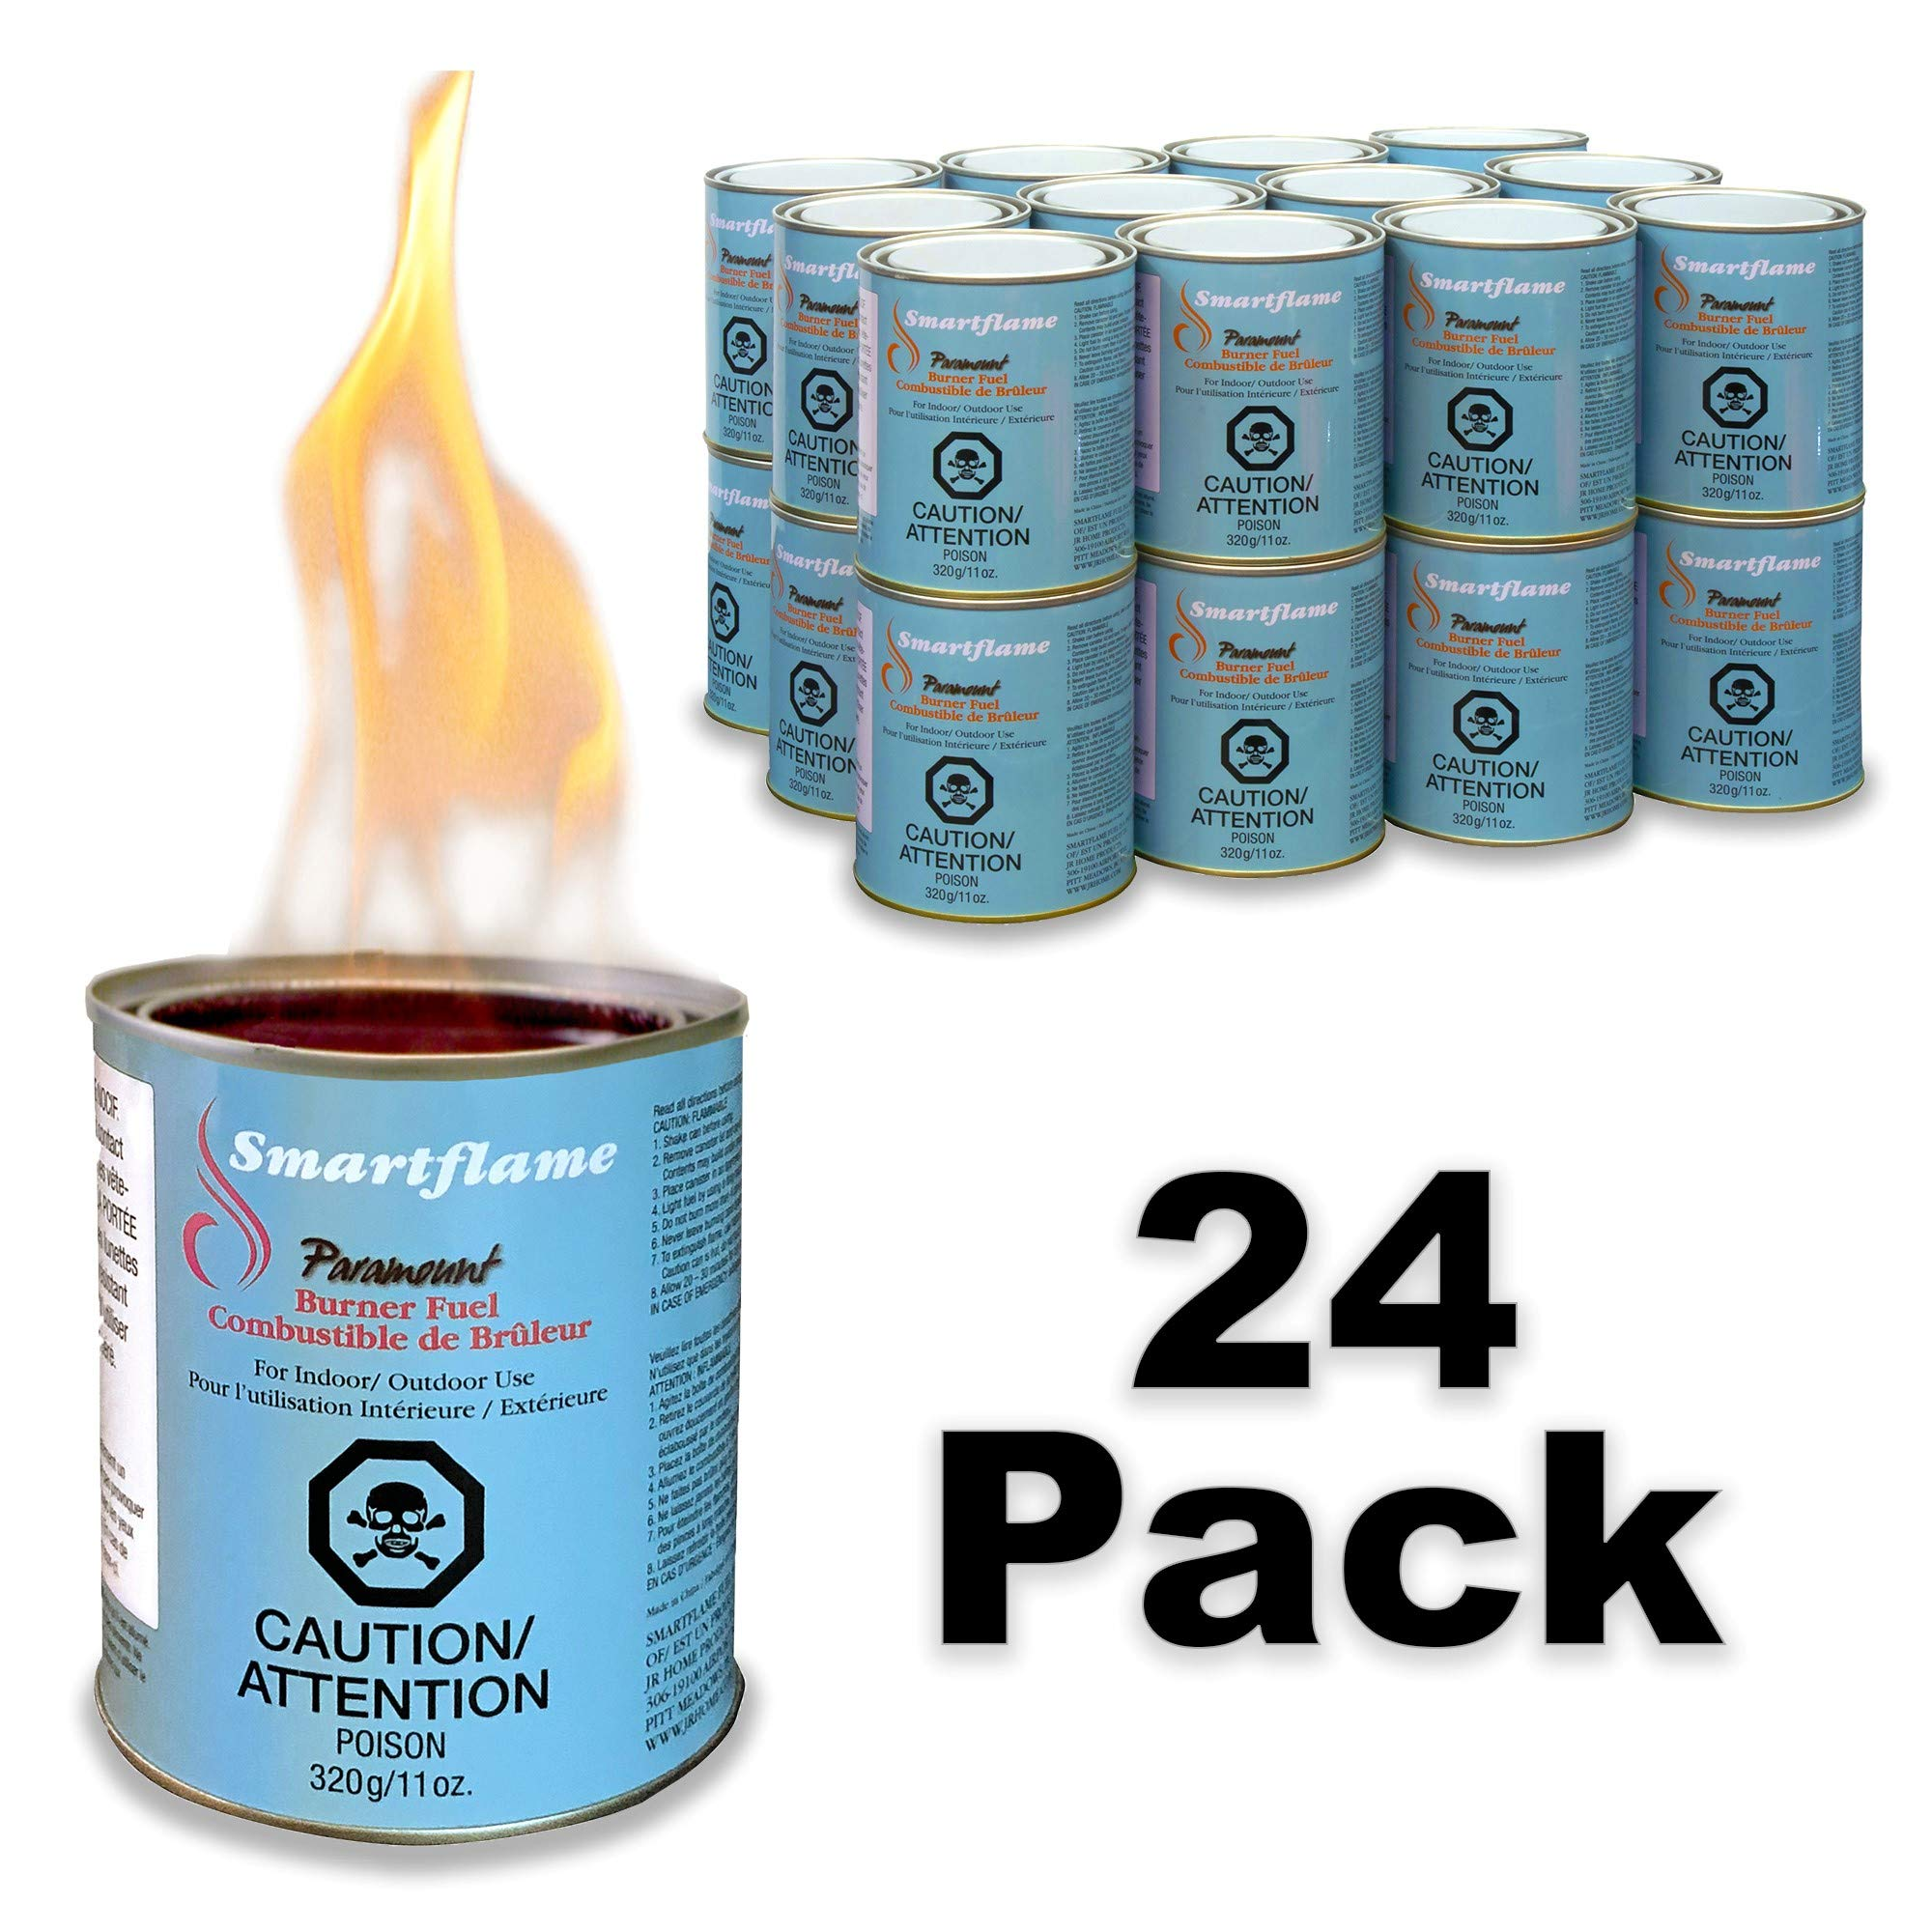 Paramount GF-CAN-07 Smartflame Case of 24 Burner Fuel, 13 oz by Paramount